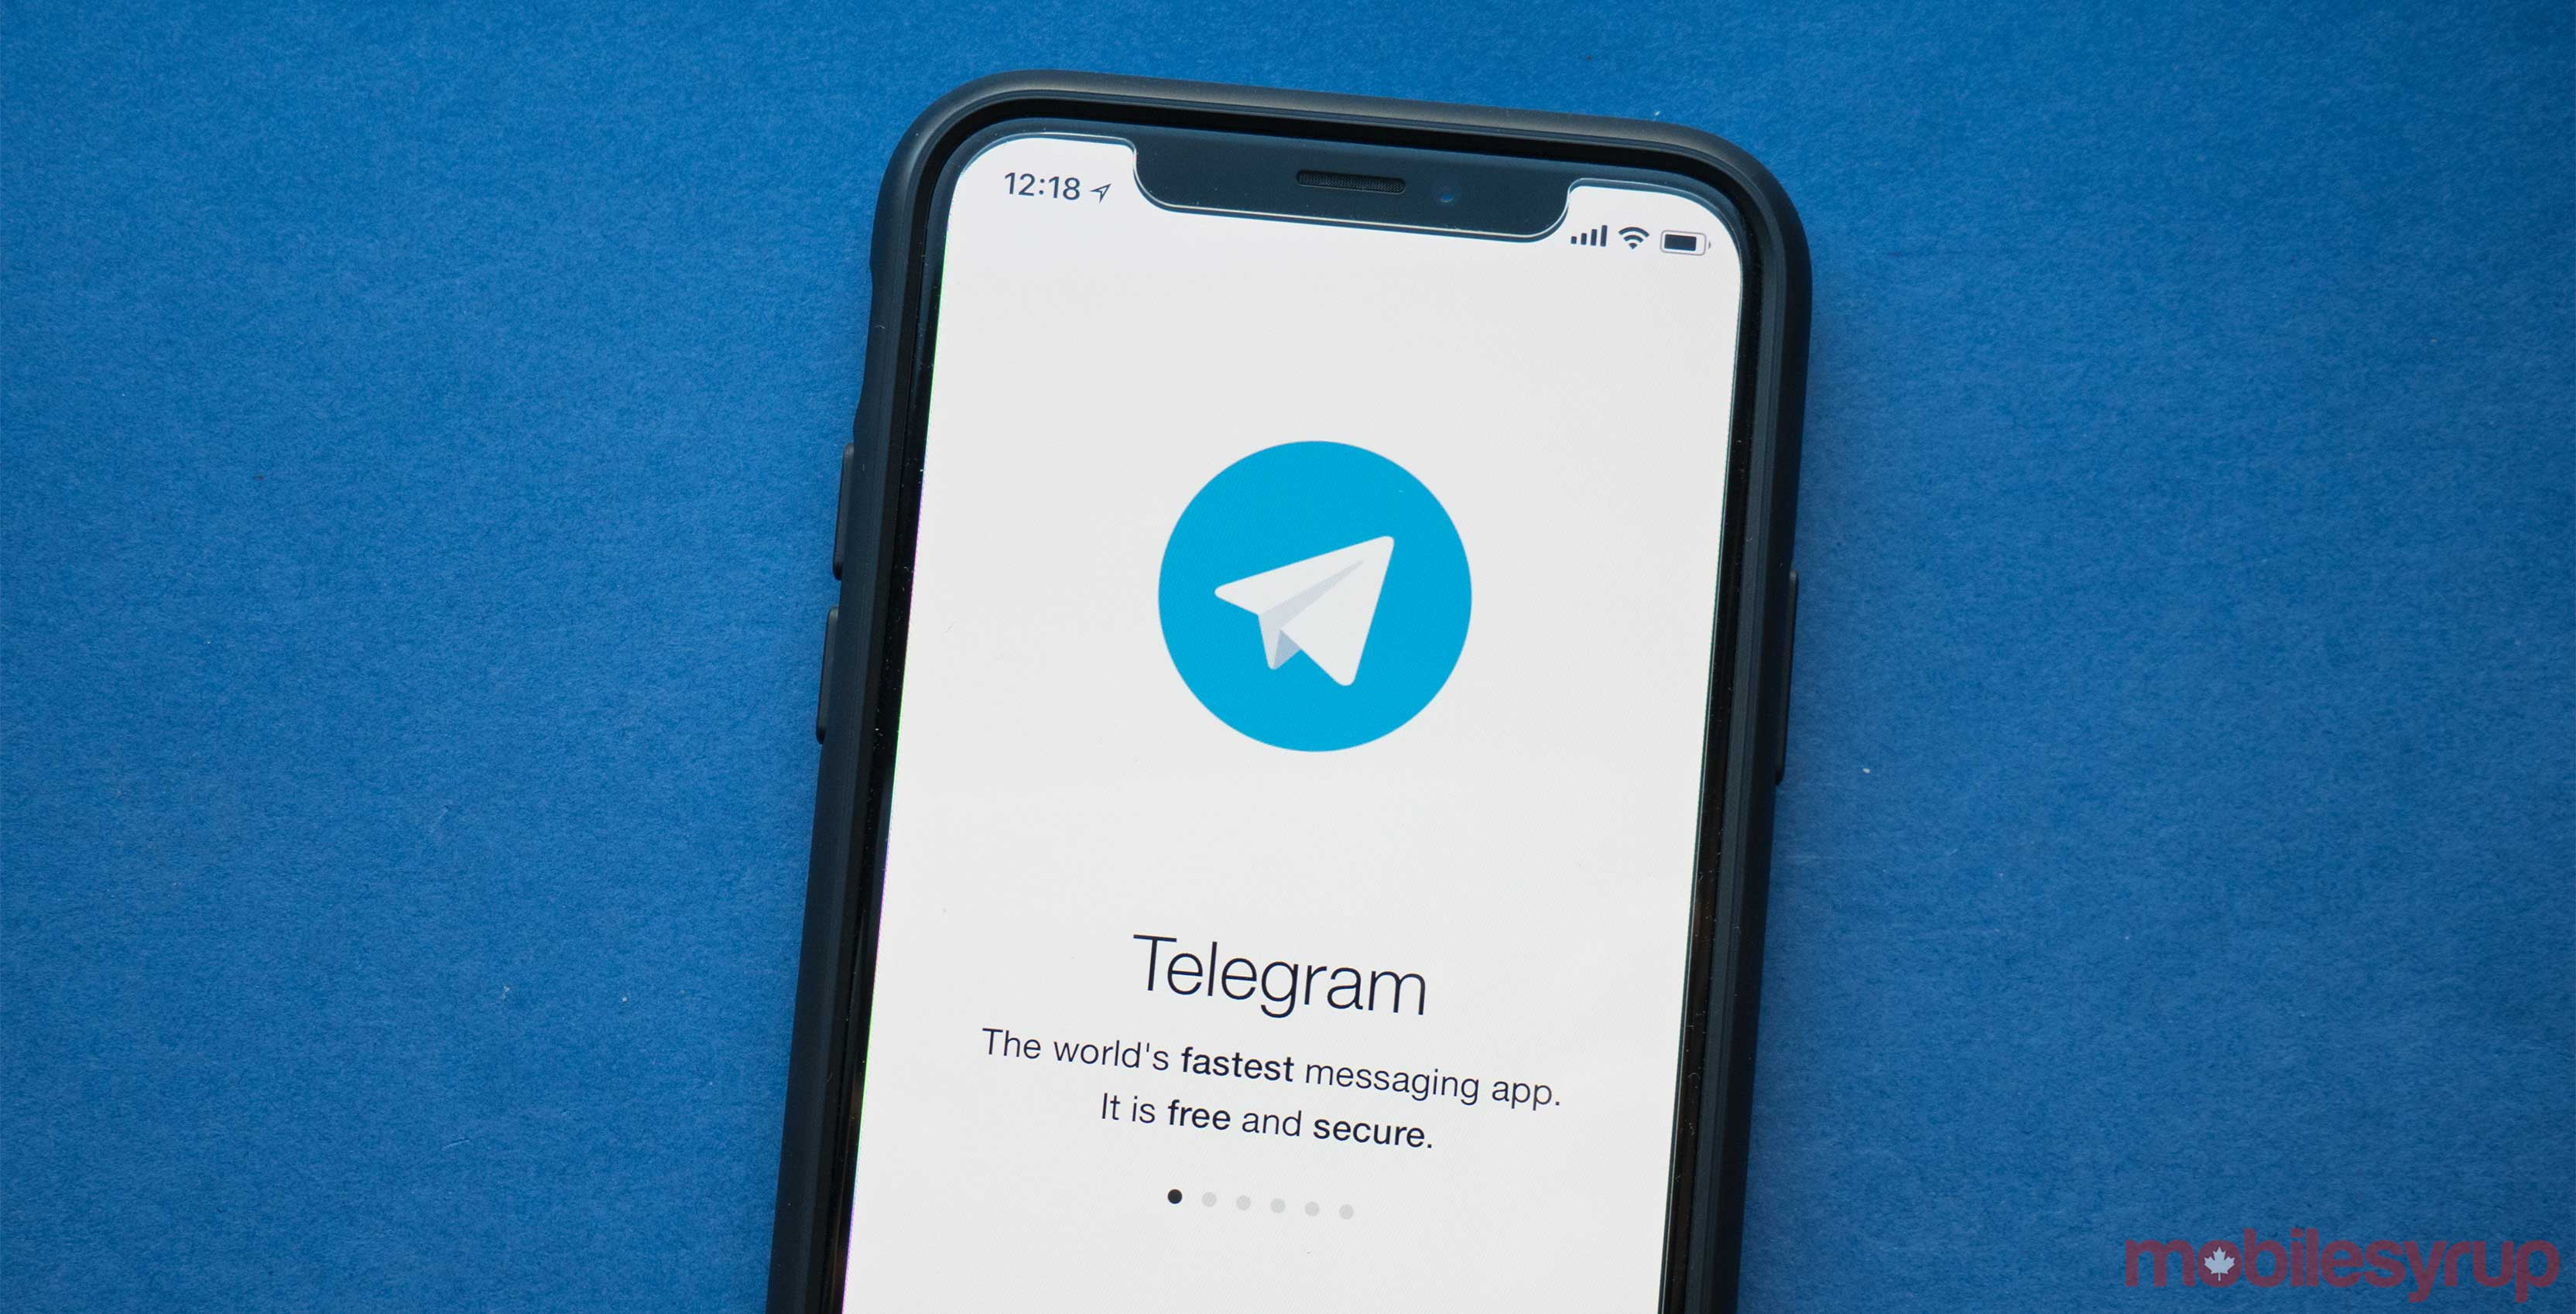 Apple temporarily removed Telegram from the App Store